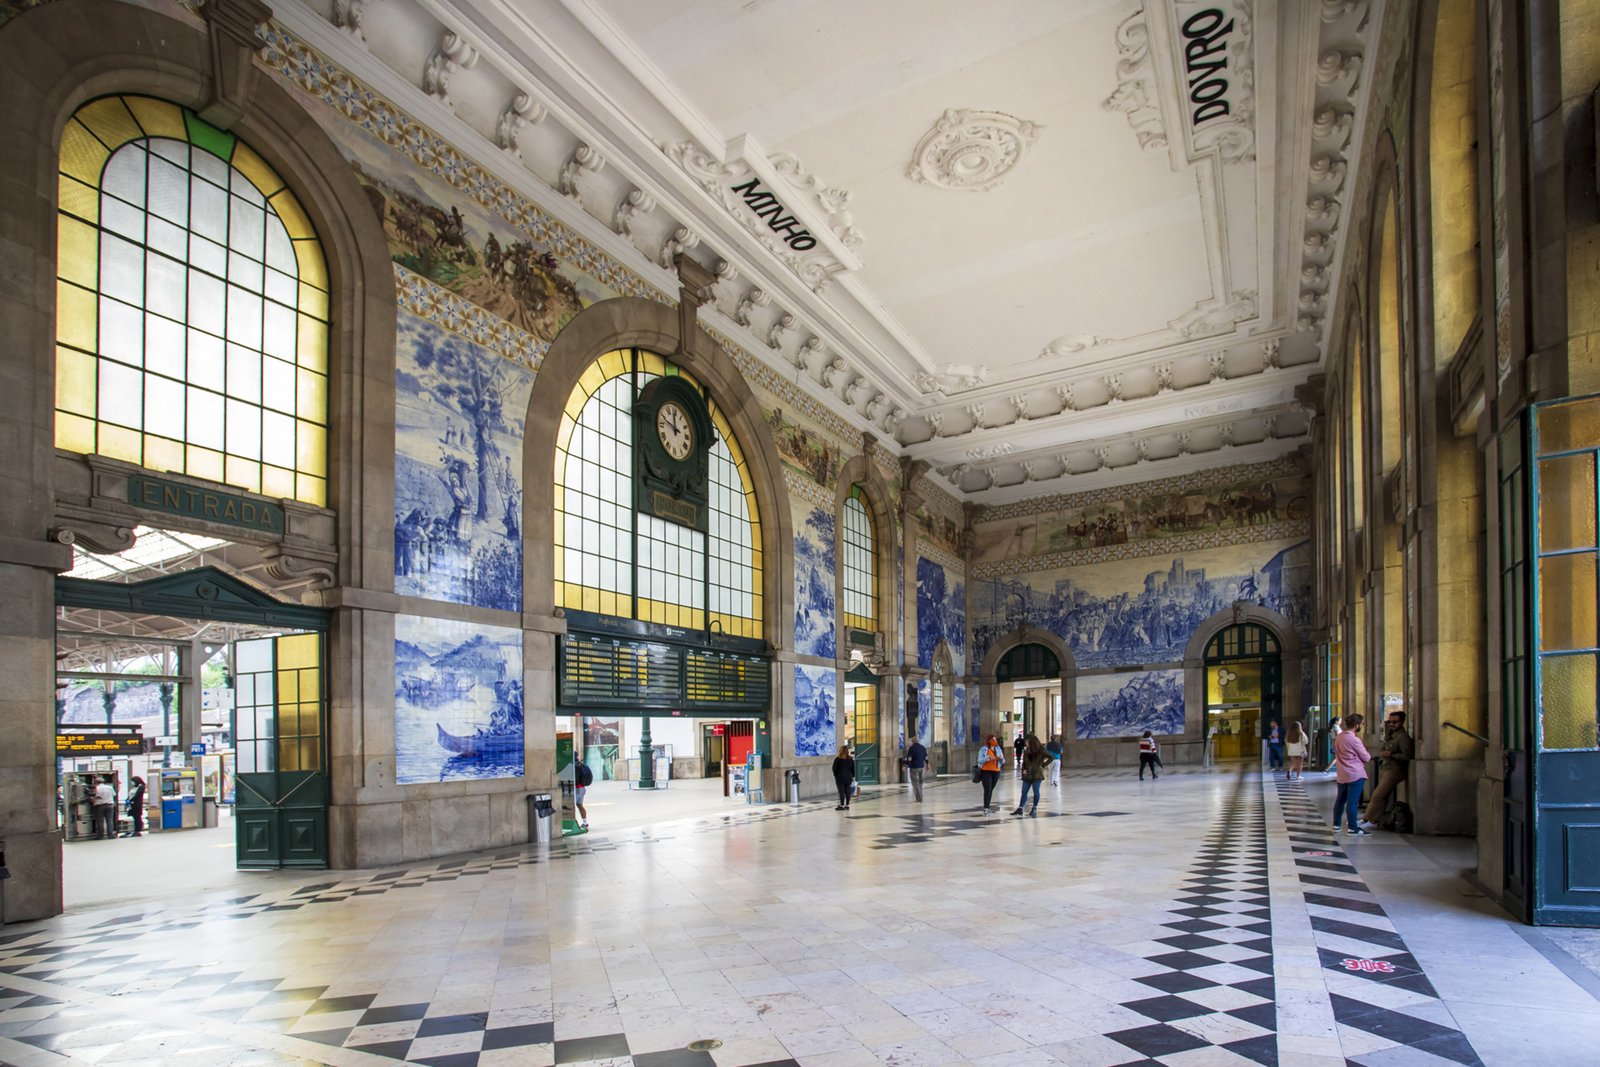 treinstation Sao Bento in Porto